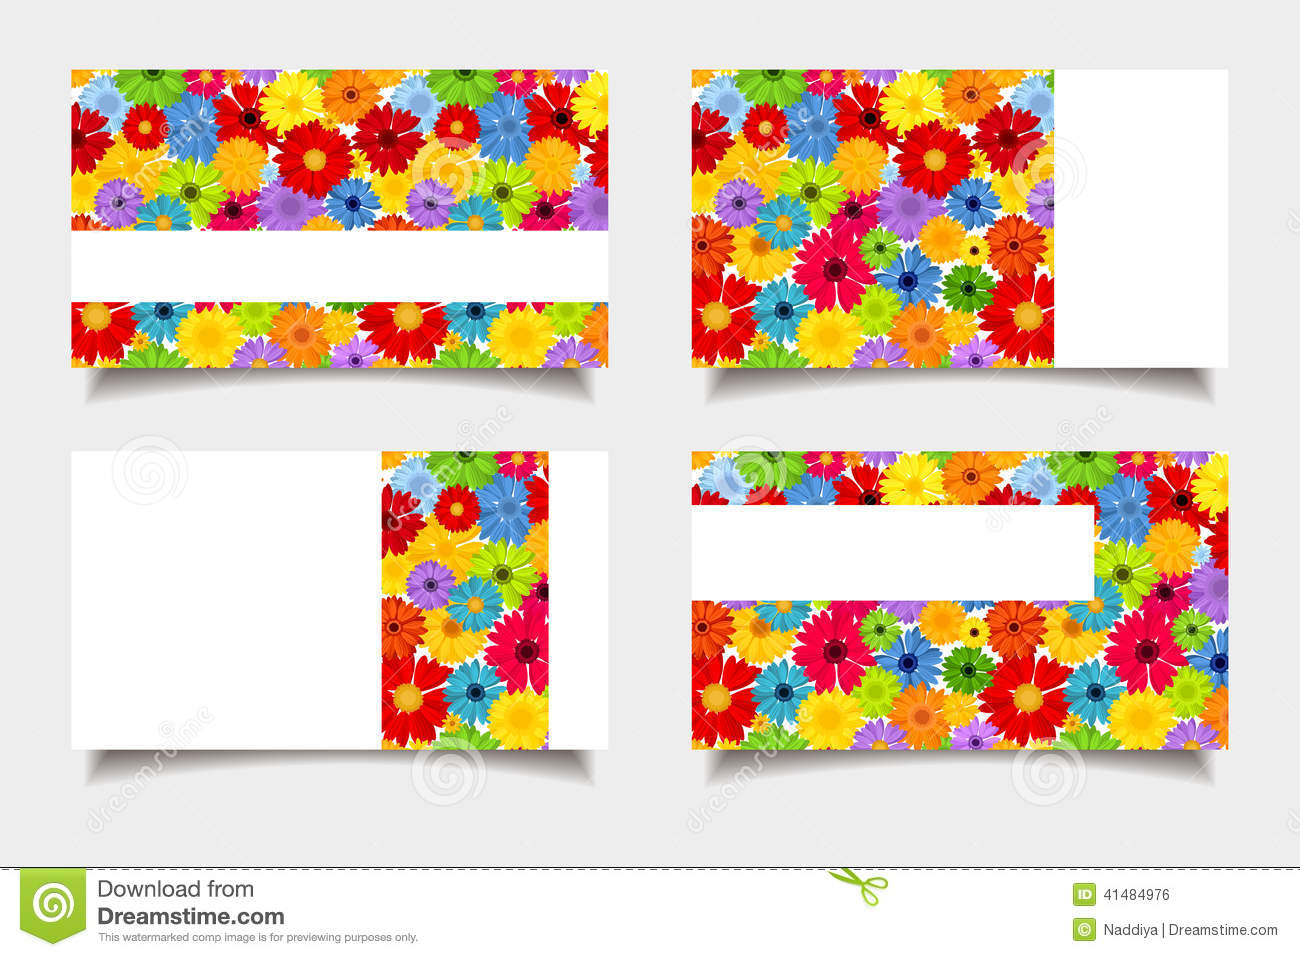 Business cards with colorful flowers. Vector illustration.